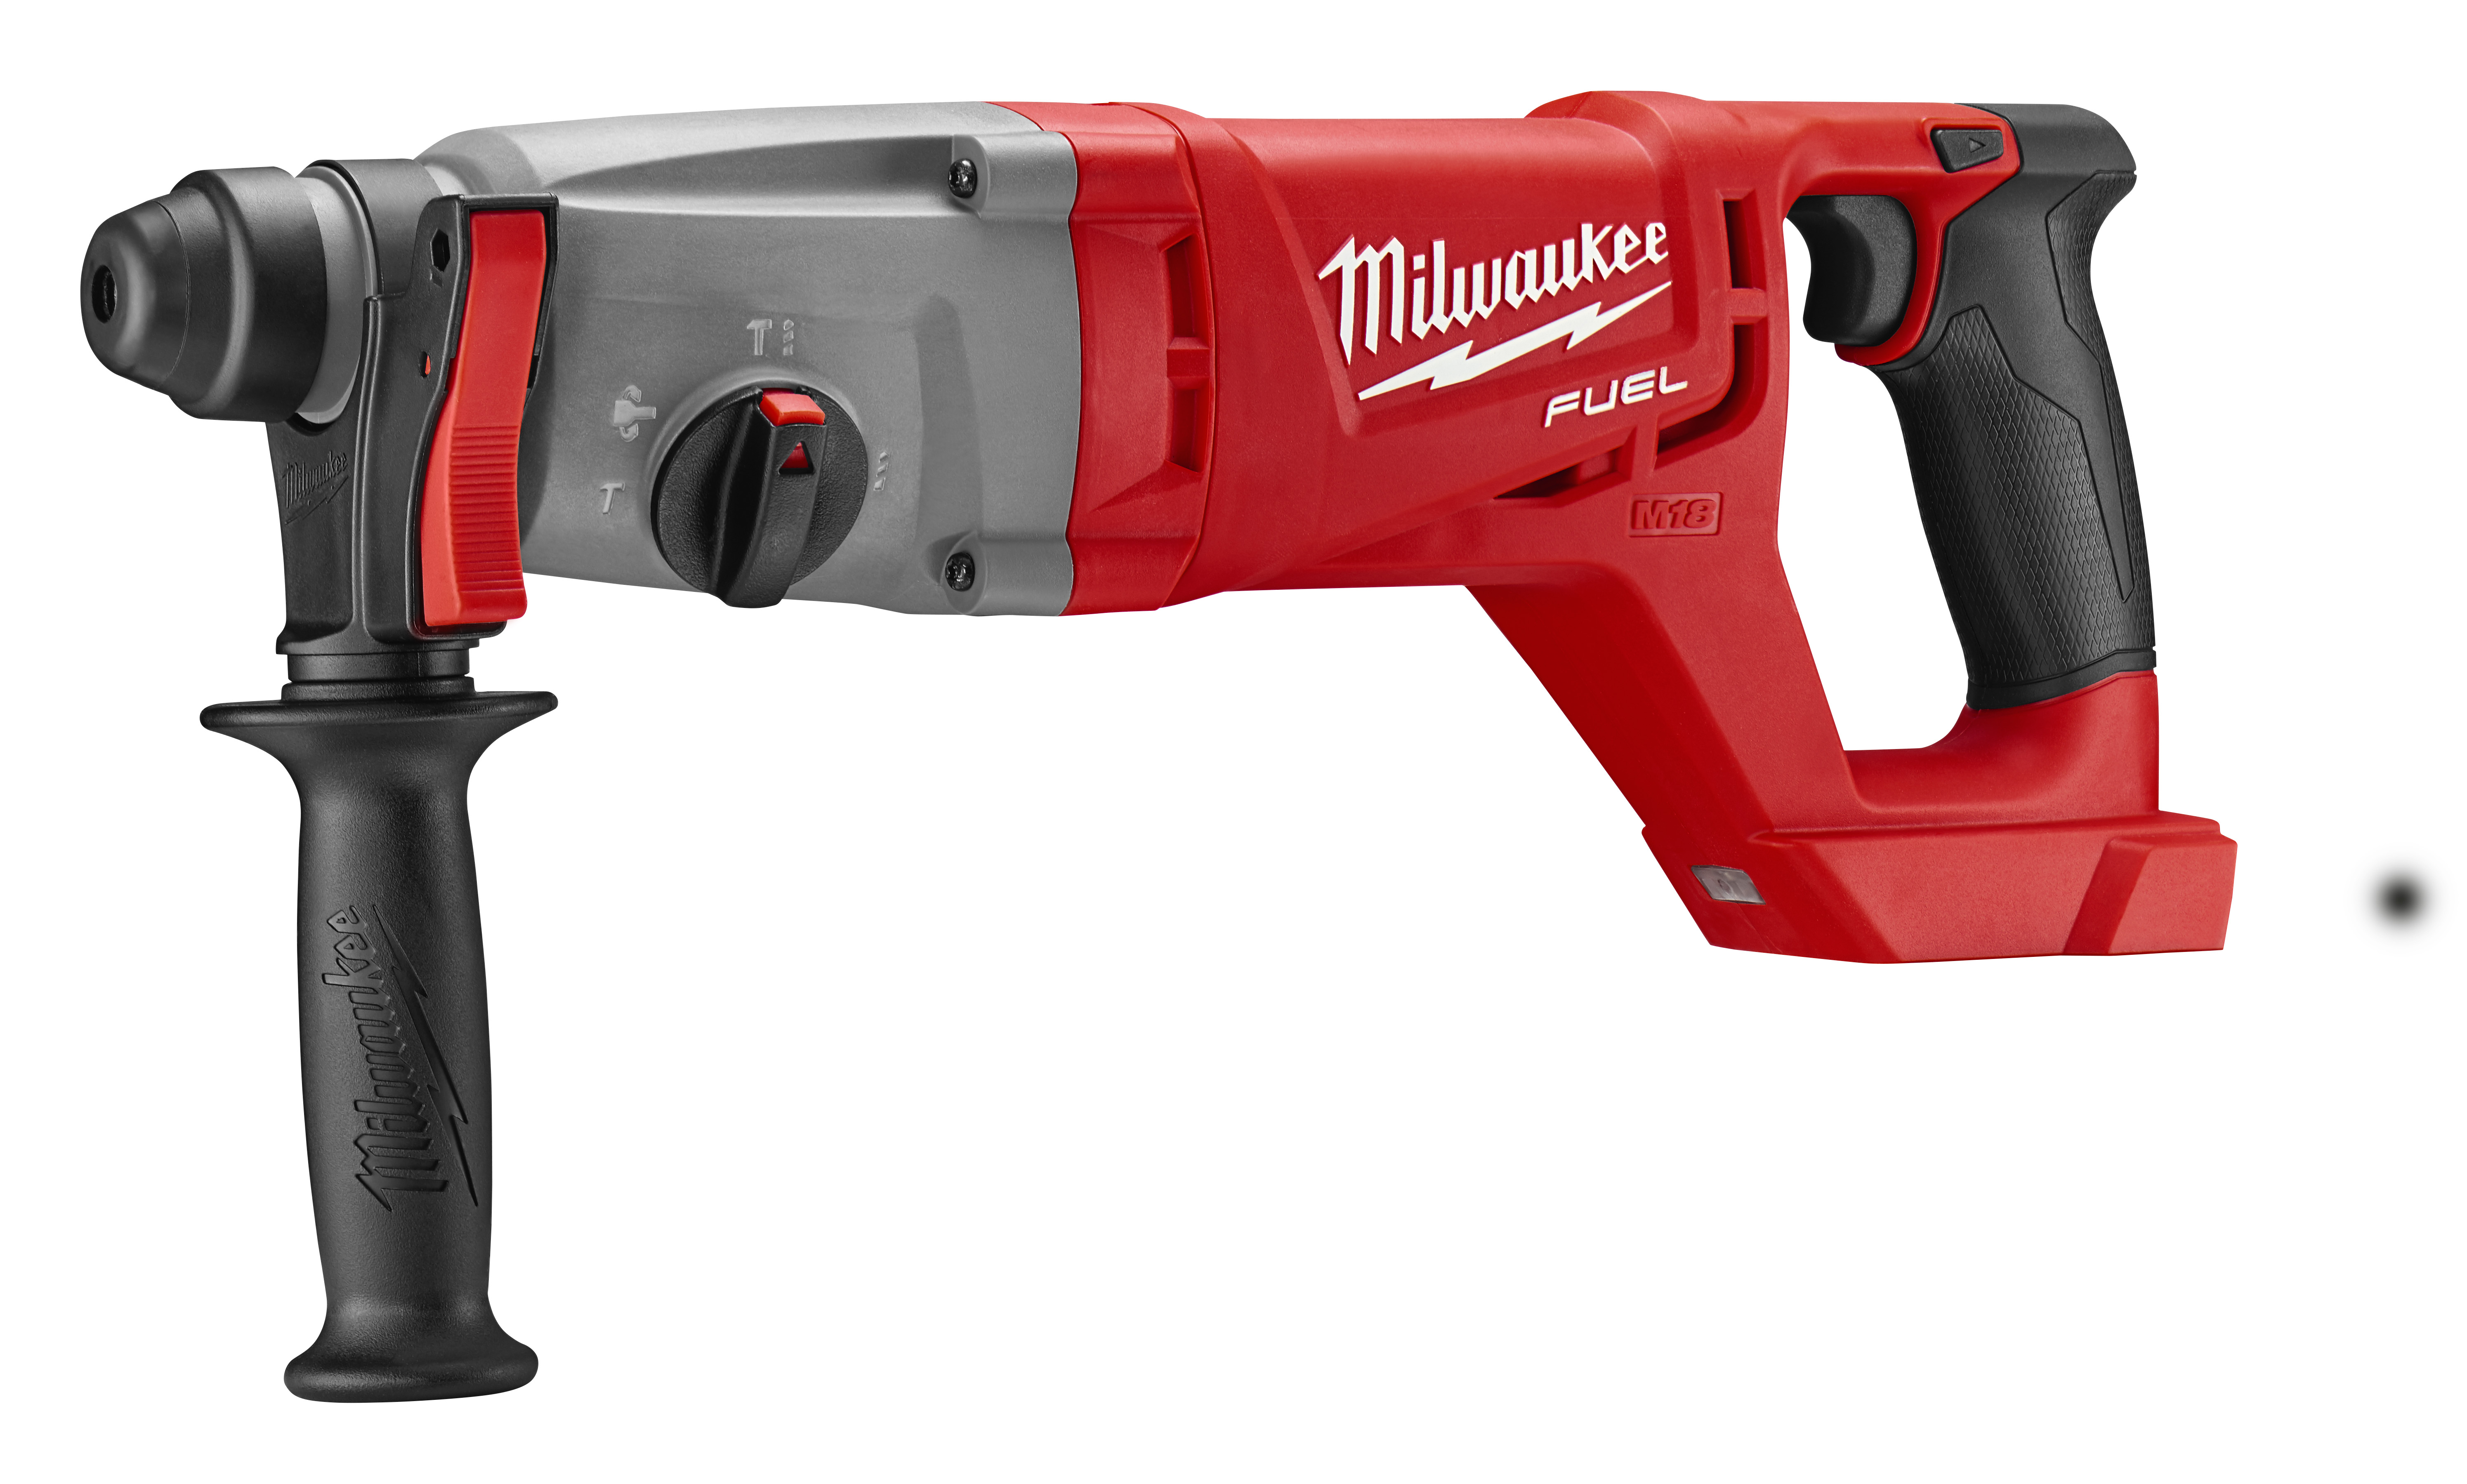 Milwaukee® M18™ FUEL™ 2713-20 Cordless Rotary Hammer, 1 in SDS Plus® Chuck, 18 VAC, 0 to 1500 rpm No-Load, Lithium-Ion Battery